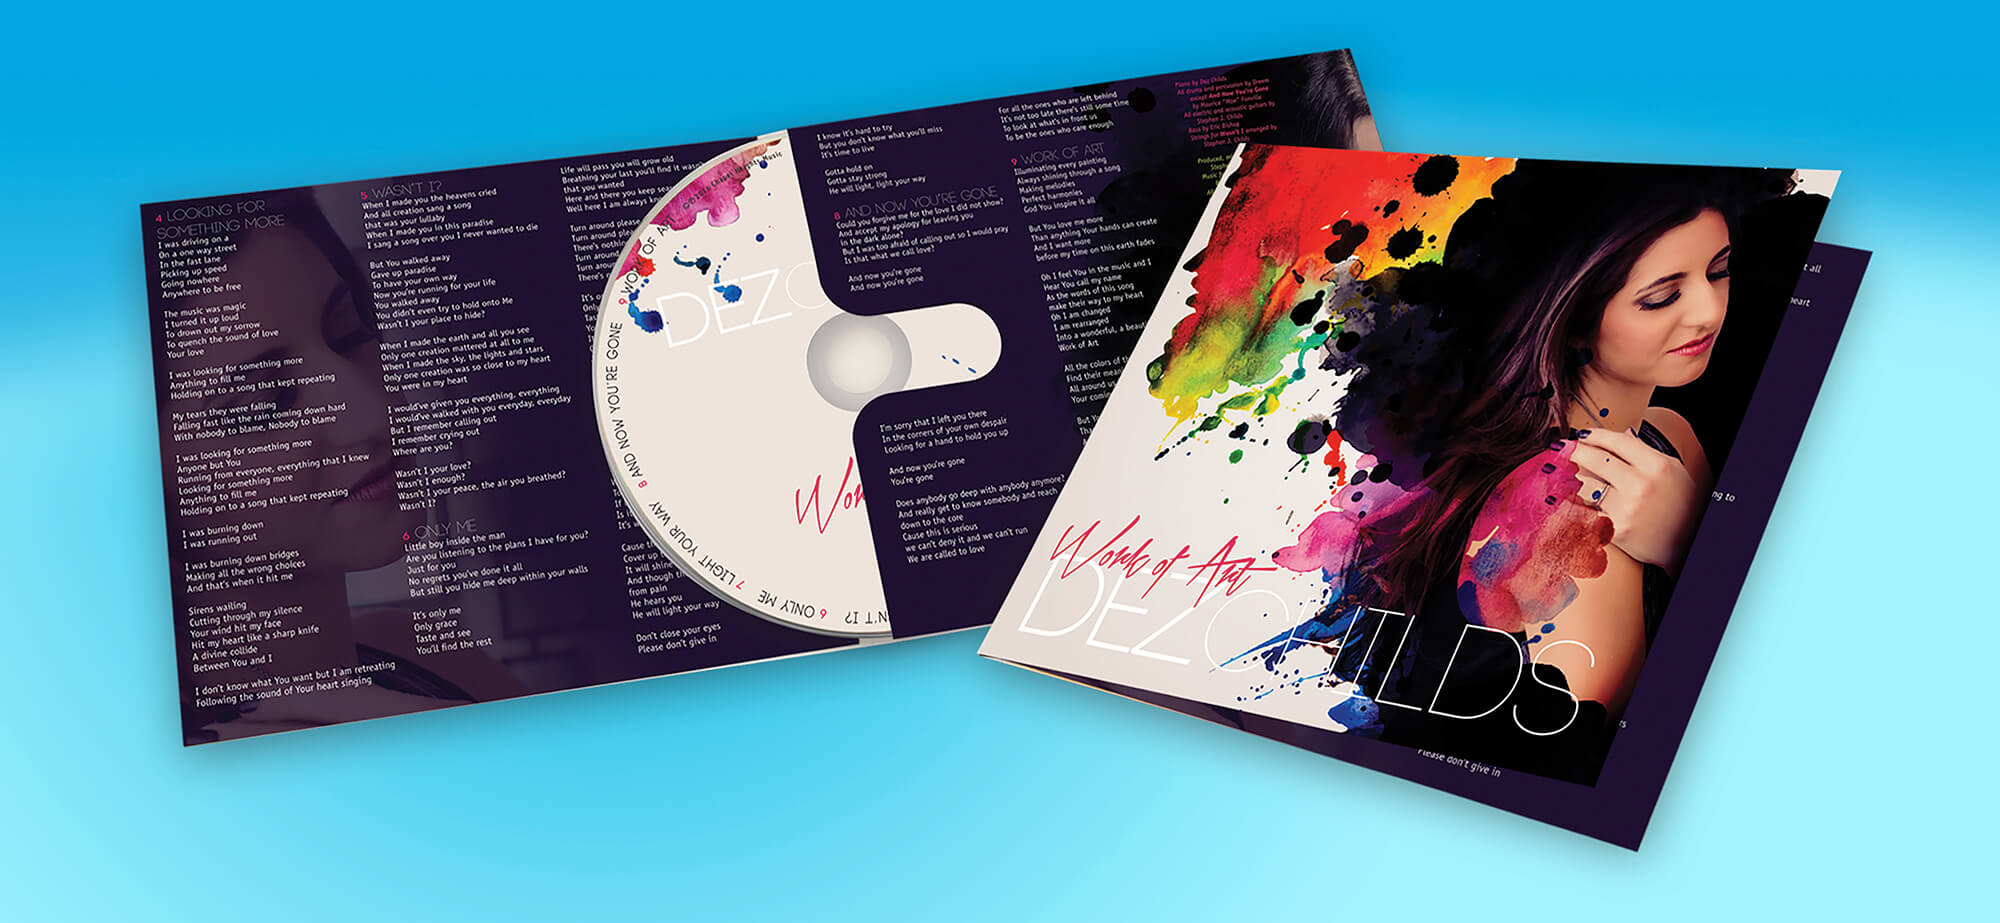 Get personalized CD design at The Design Studio at Disc Makers